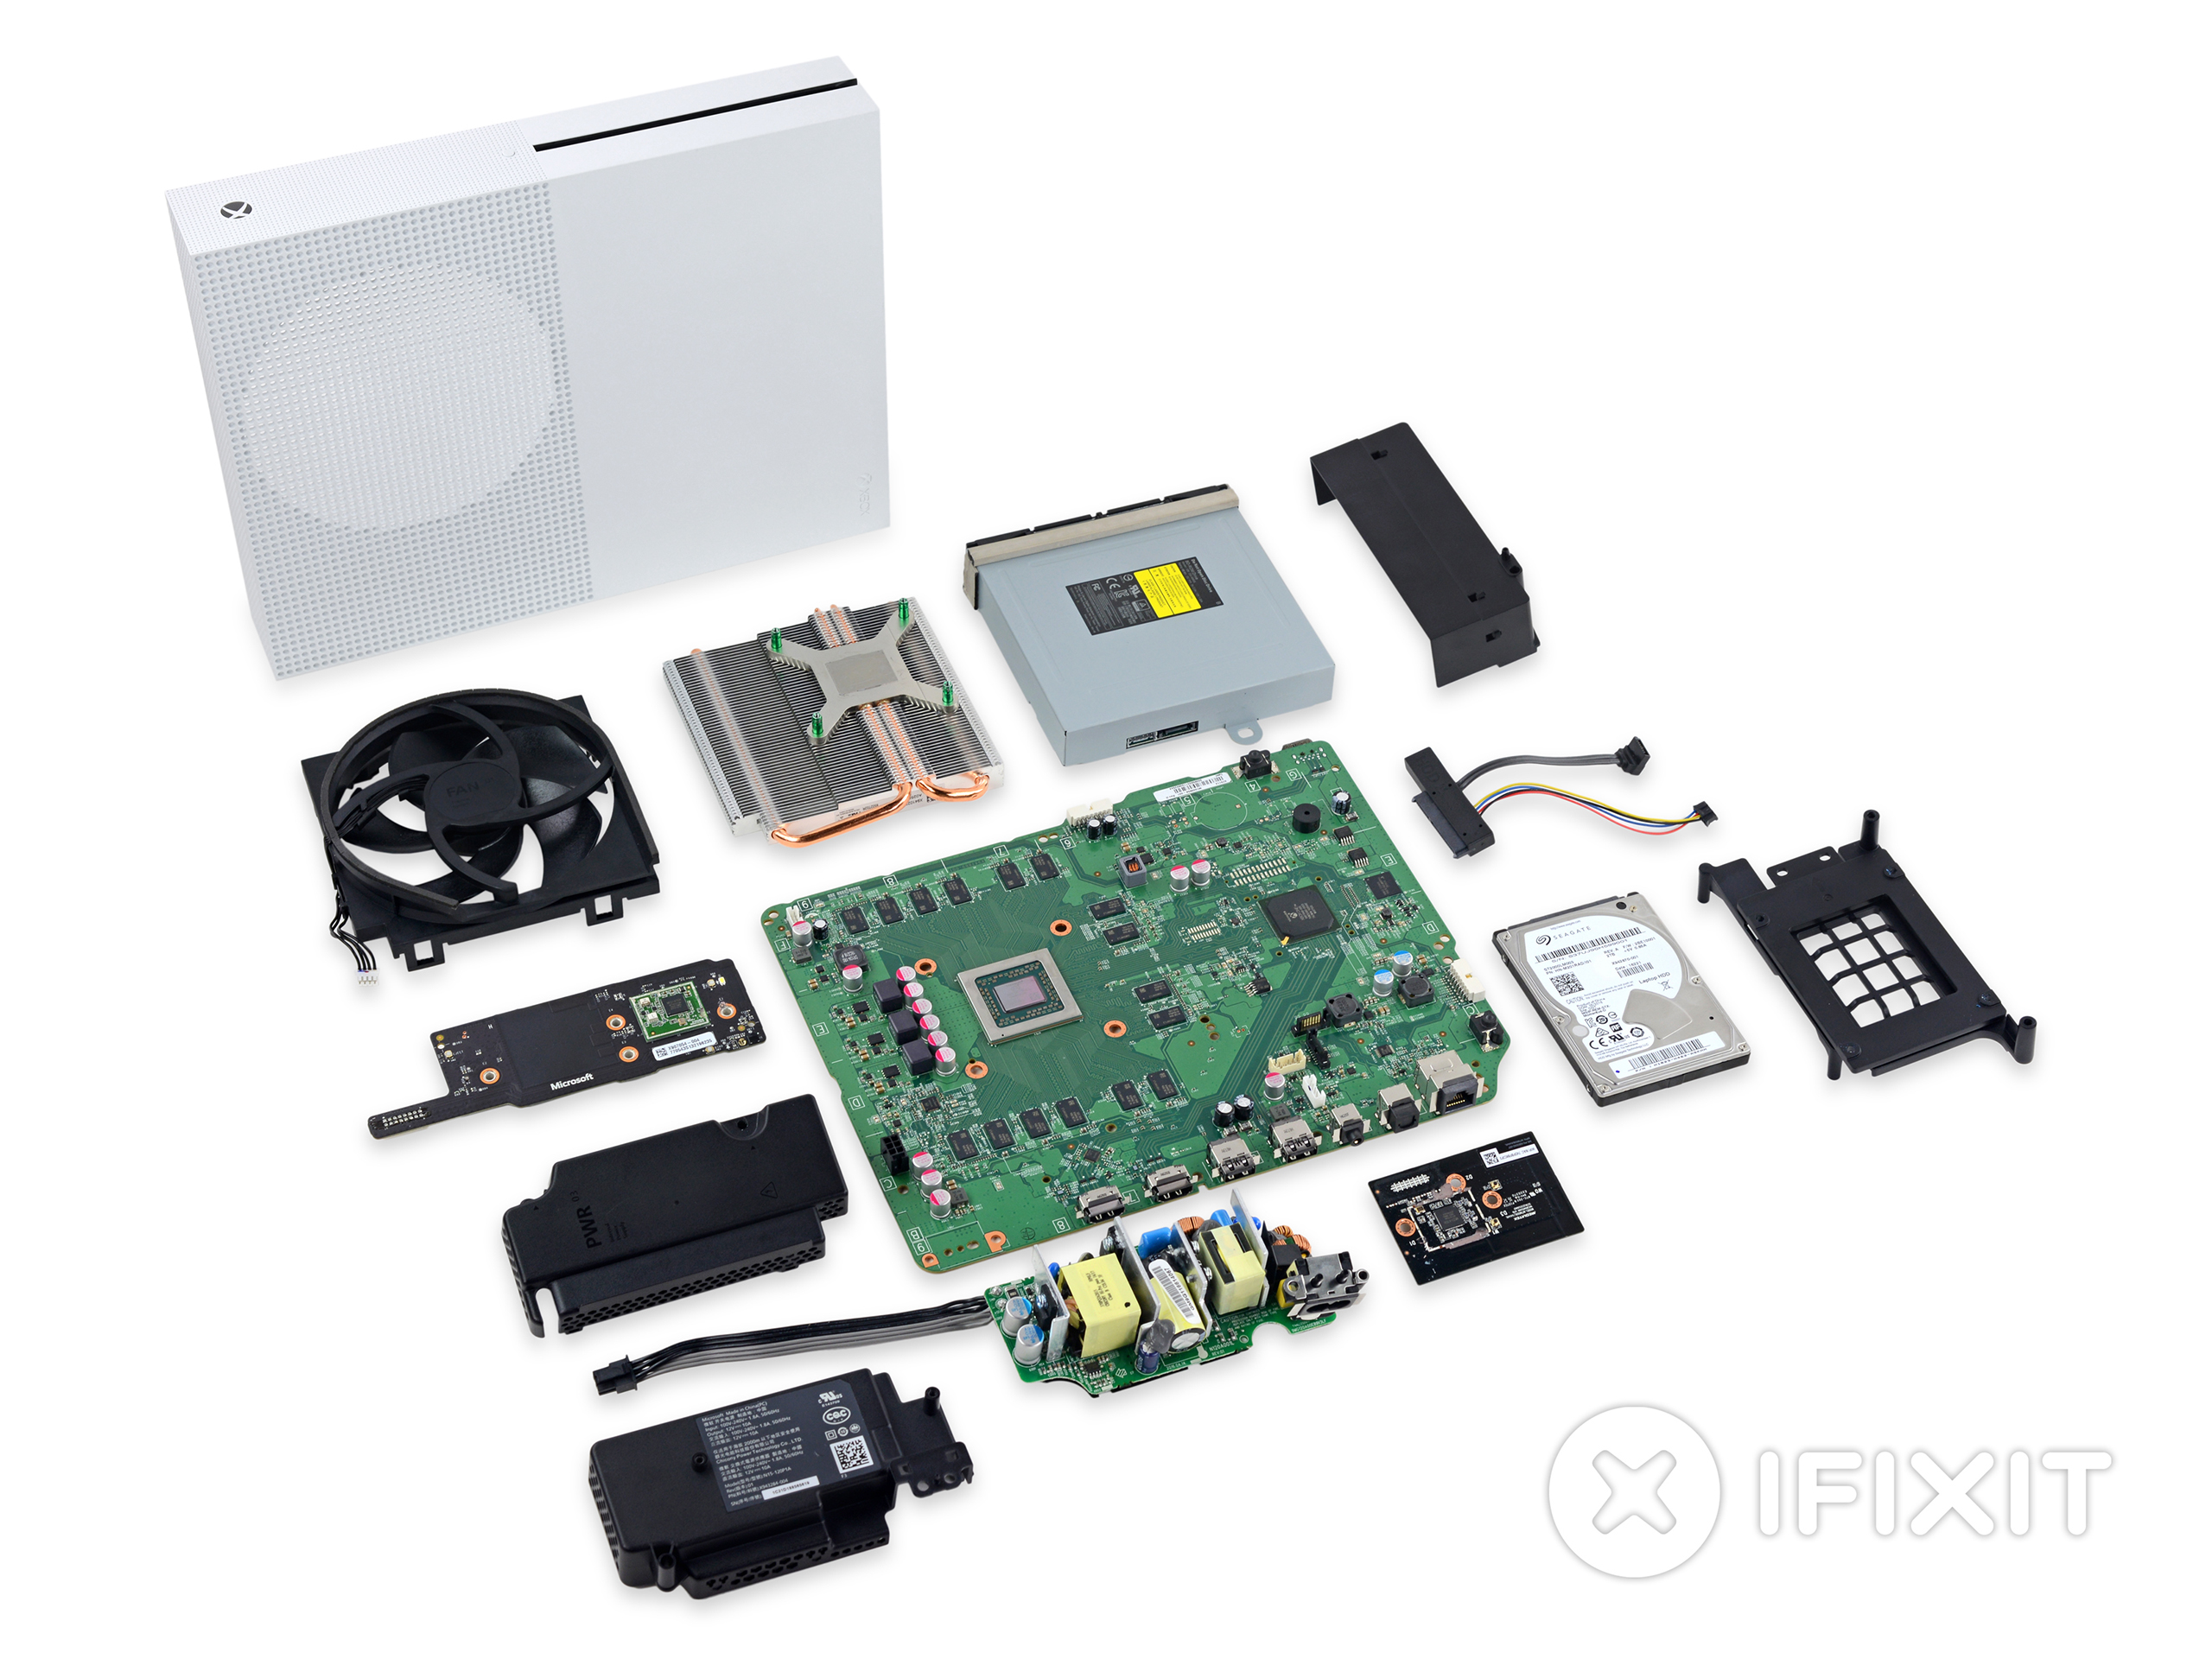 The Xbox One S entirely dismantled.